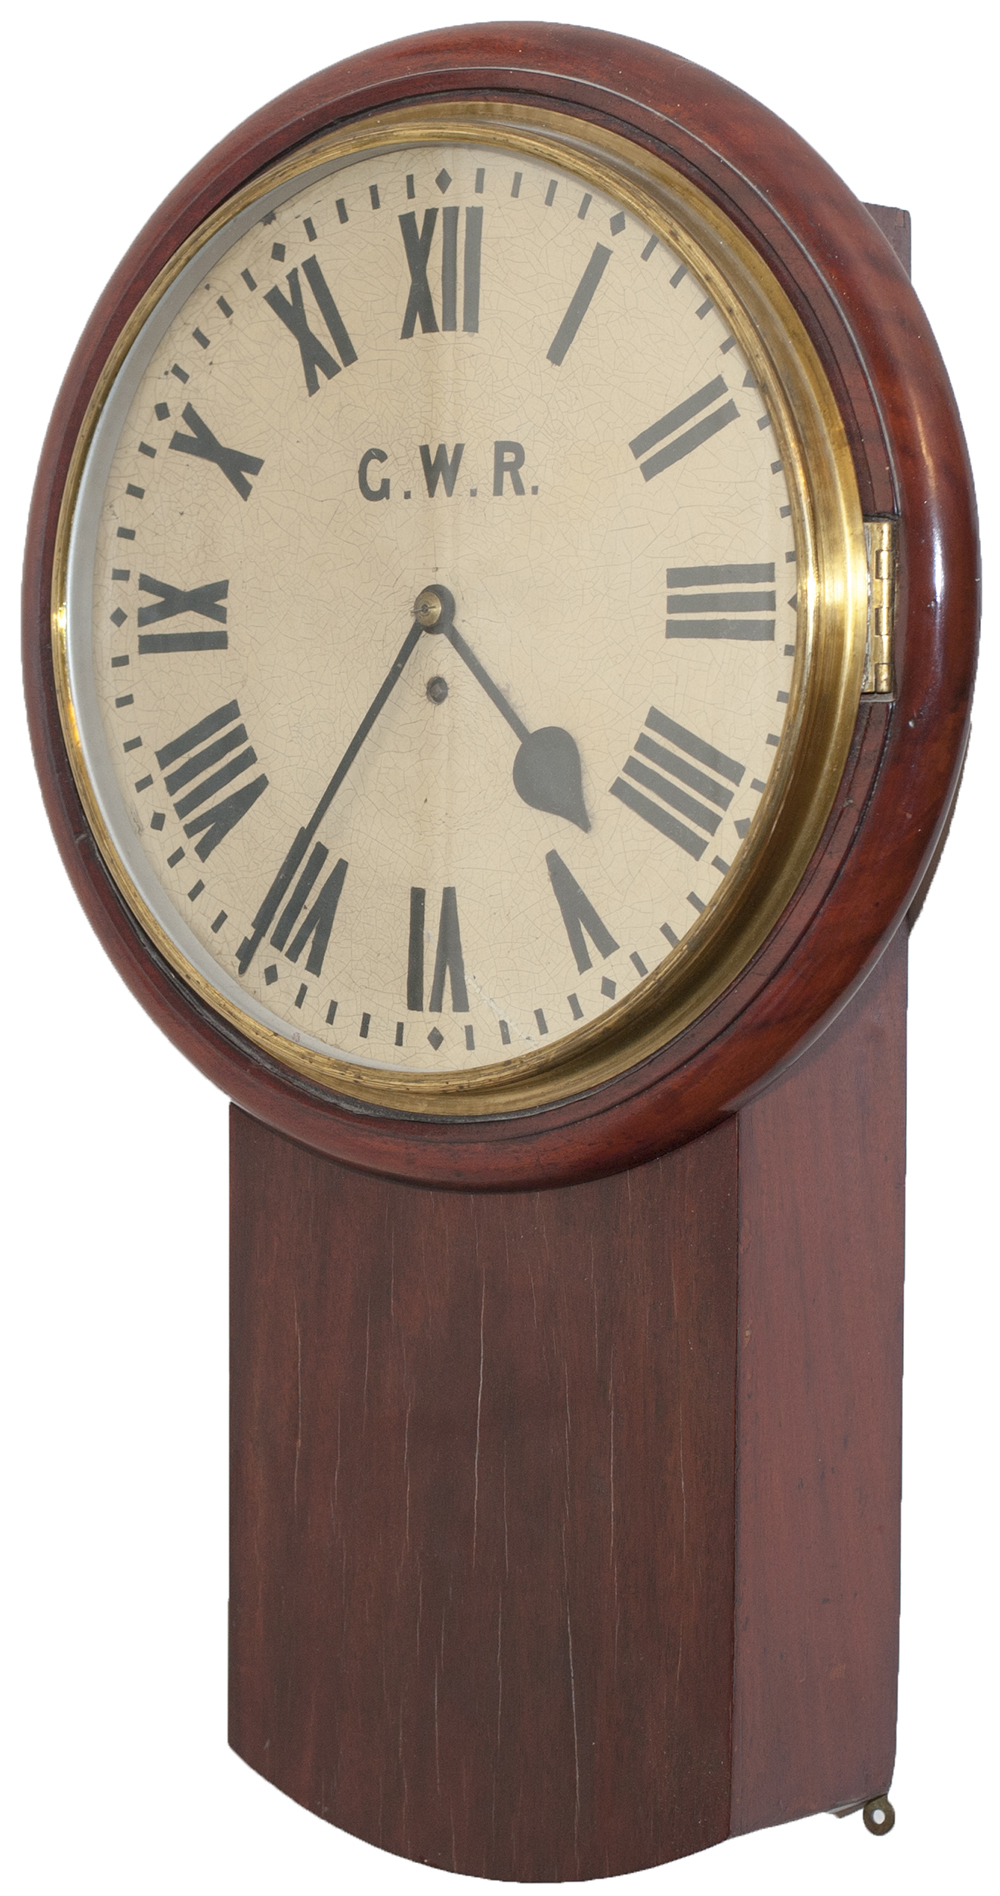 Lot 229 - Great Western Railway mahogany cased drop dial 14 inch fusee clock lettered on the dial G.W.R